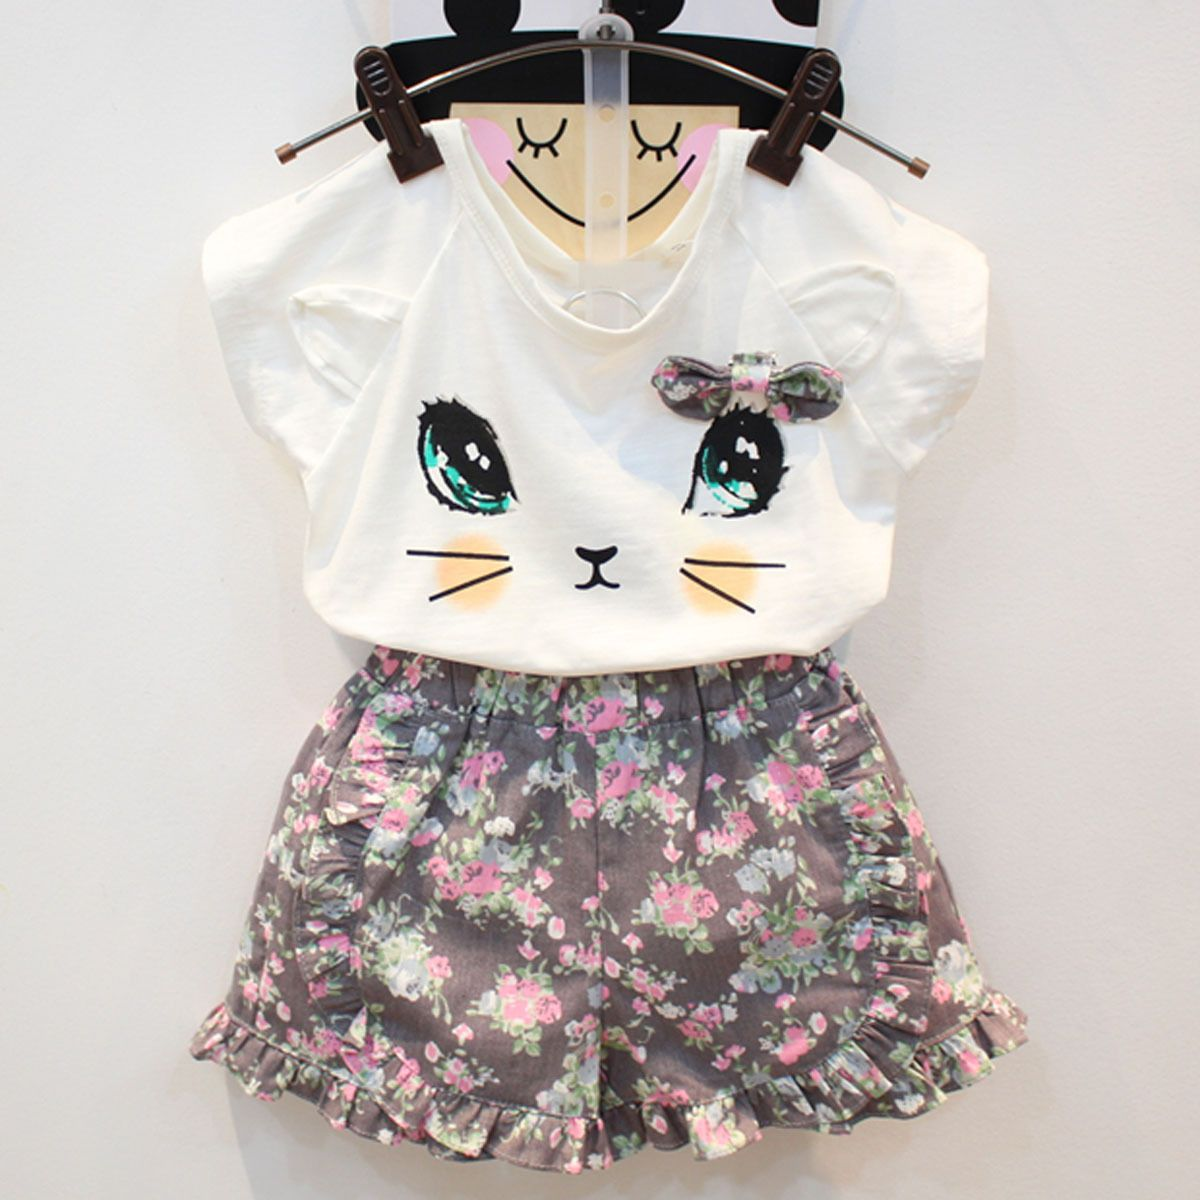 b37ccb9aa4d  7.89 - Toddler Kids Baby Girls T-Shirt Tops+Floral Short Pants Outfits  Clothes 2Pcs Set  ebay  Fashion